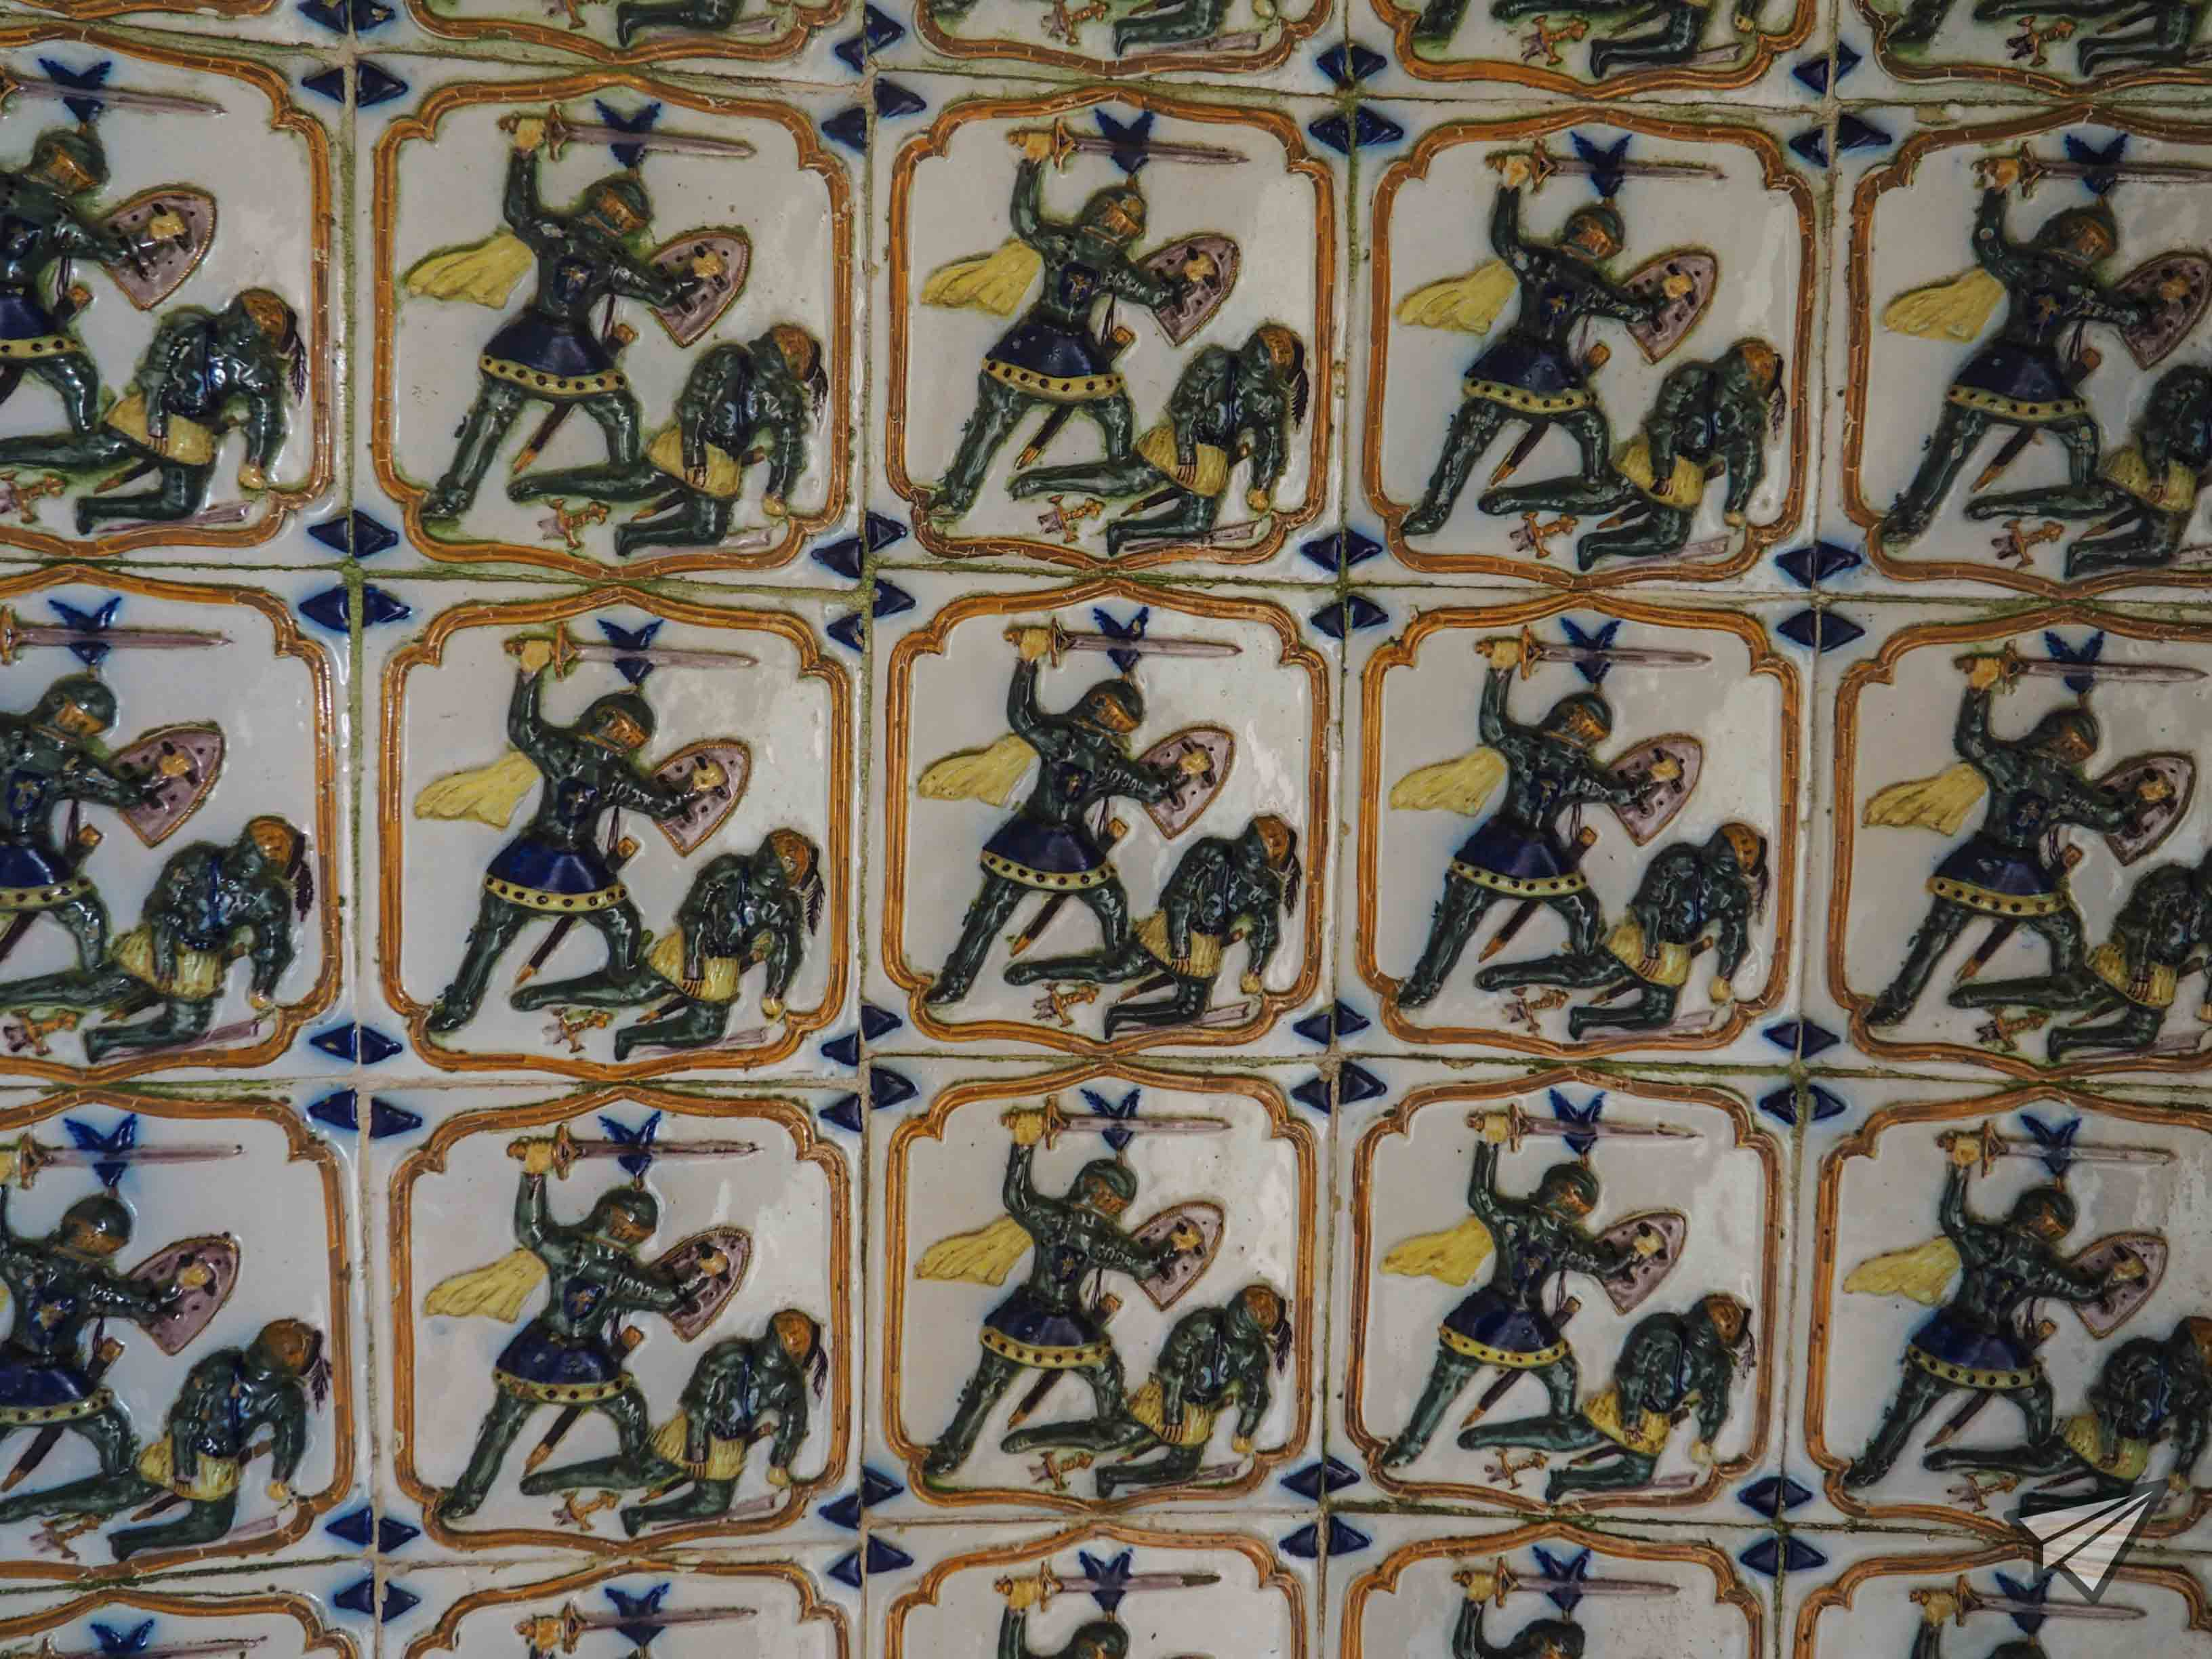 Palácio Nacional da Pena decoration